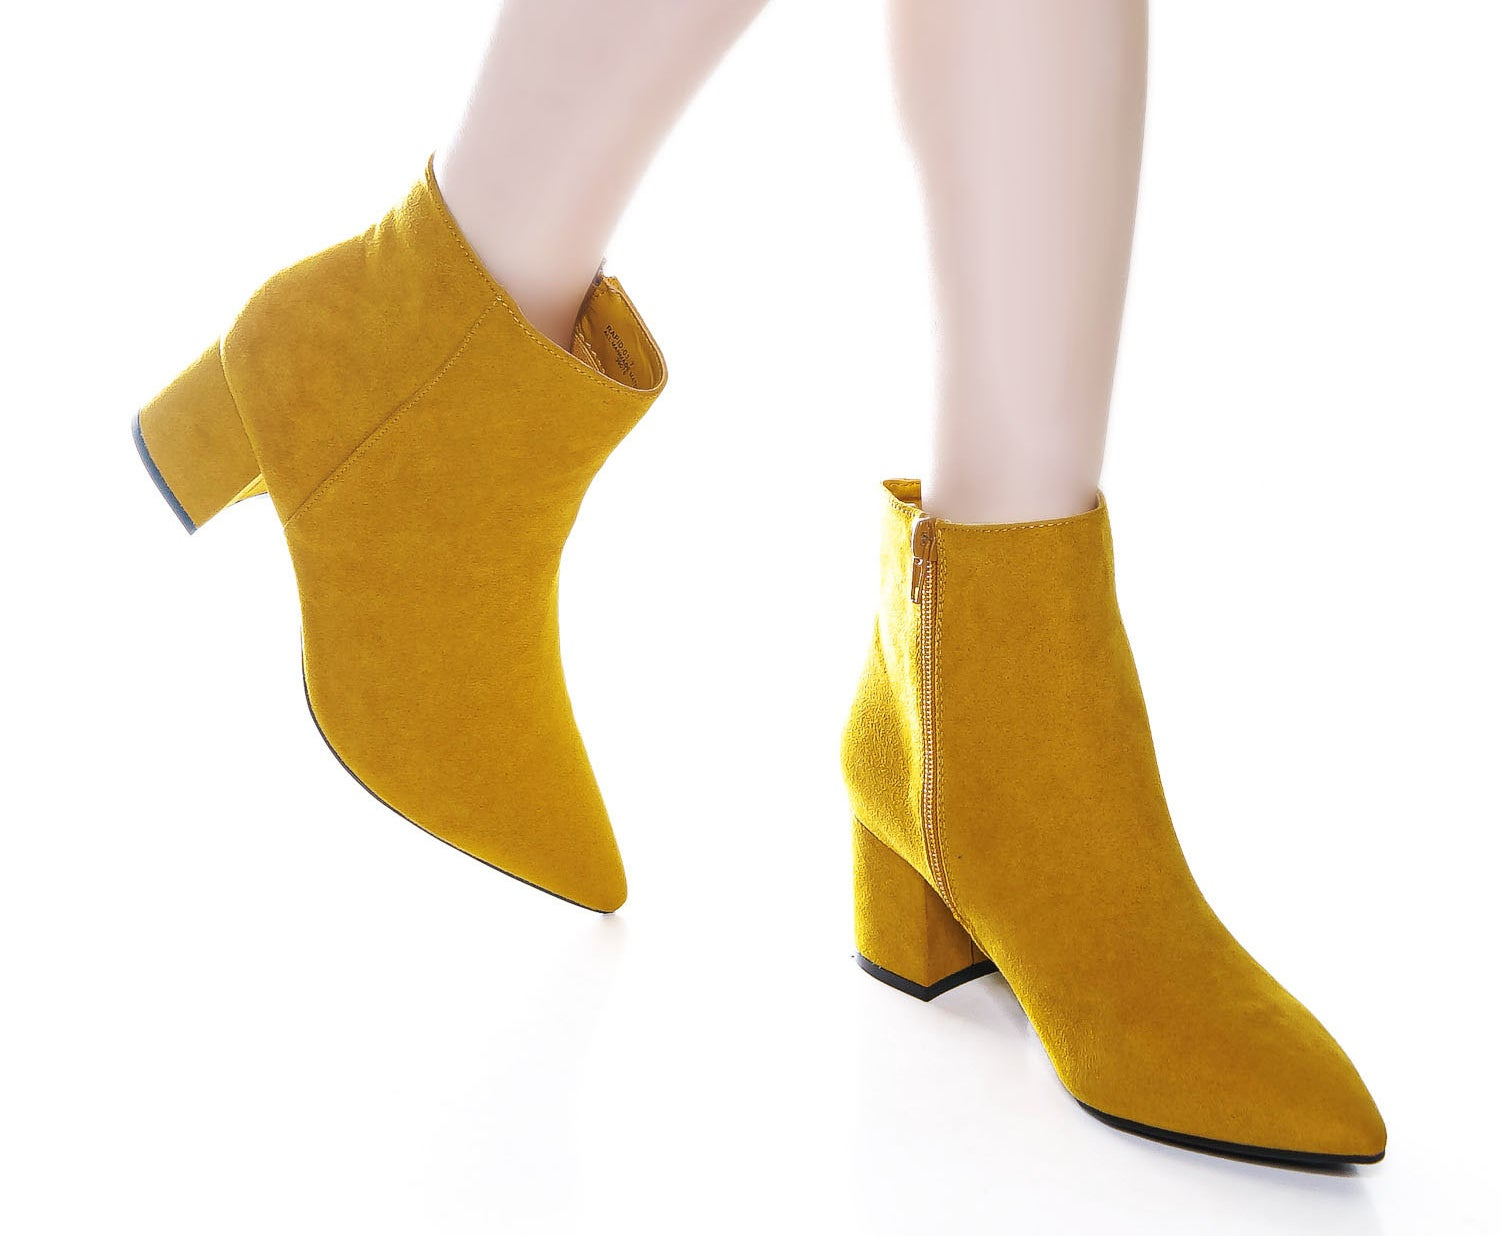 The faux suede beauties in mustard yellow